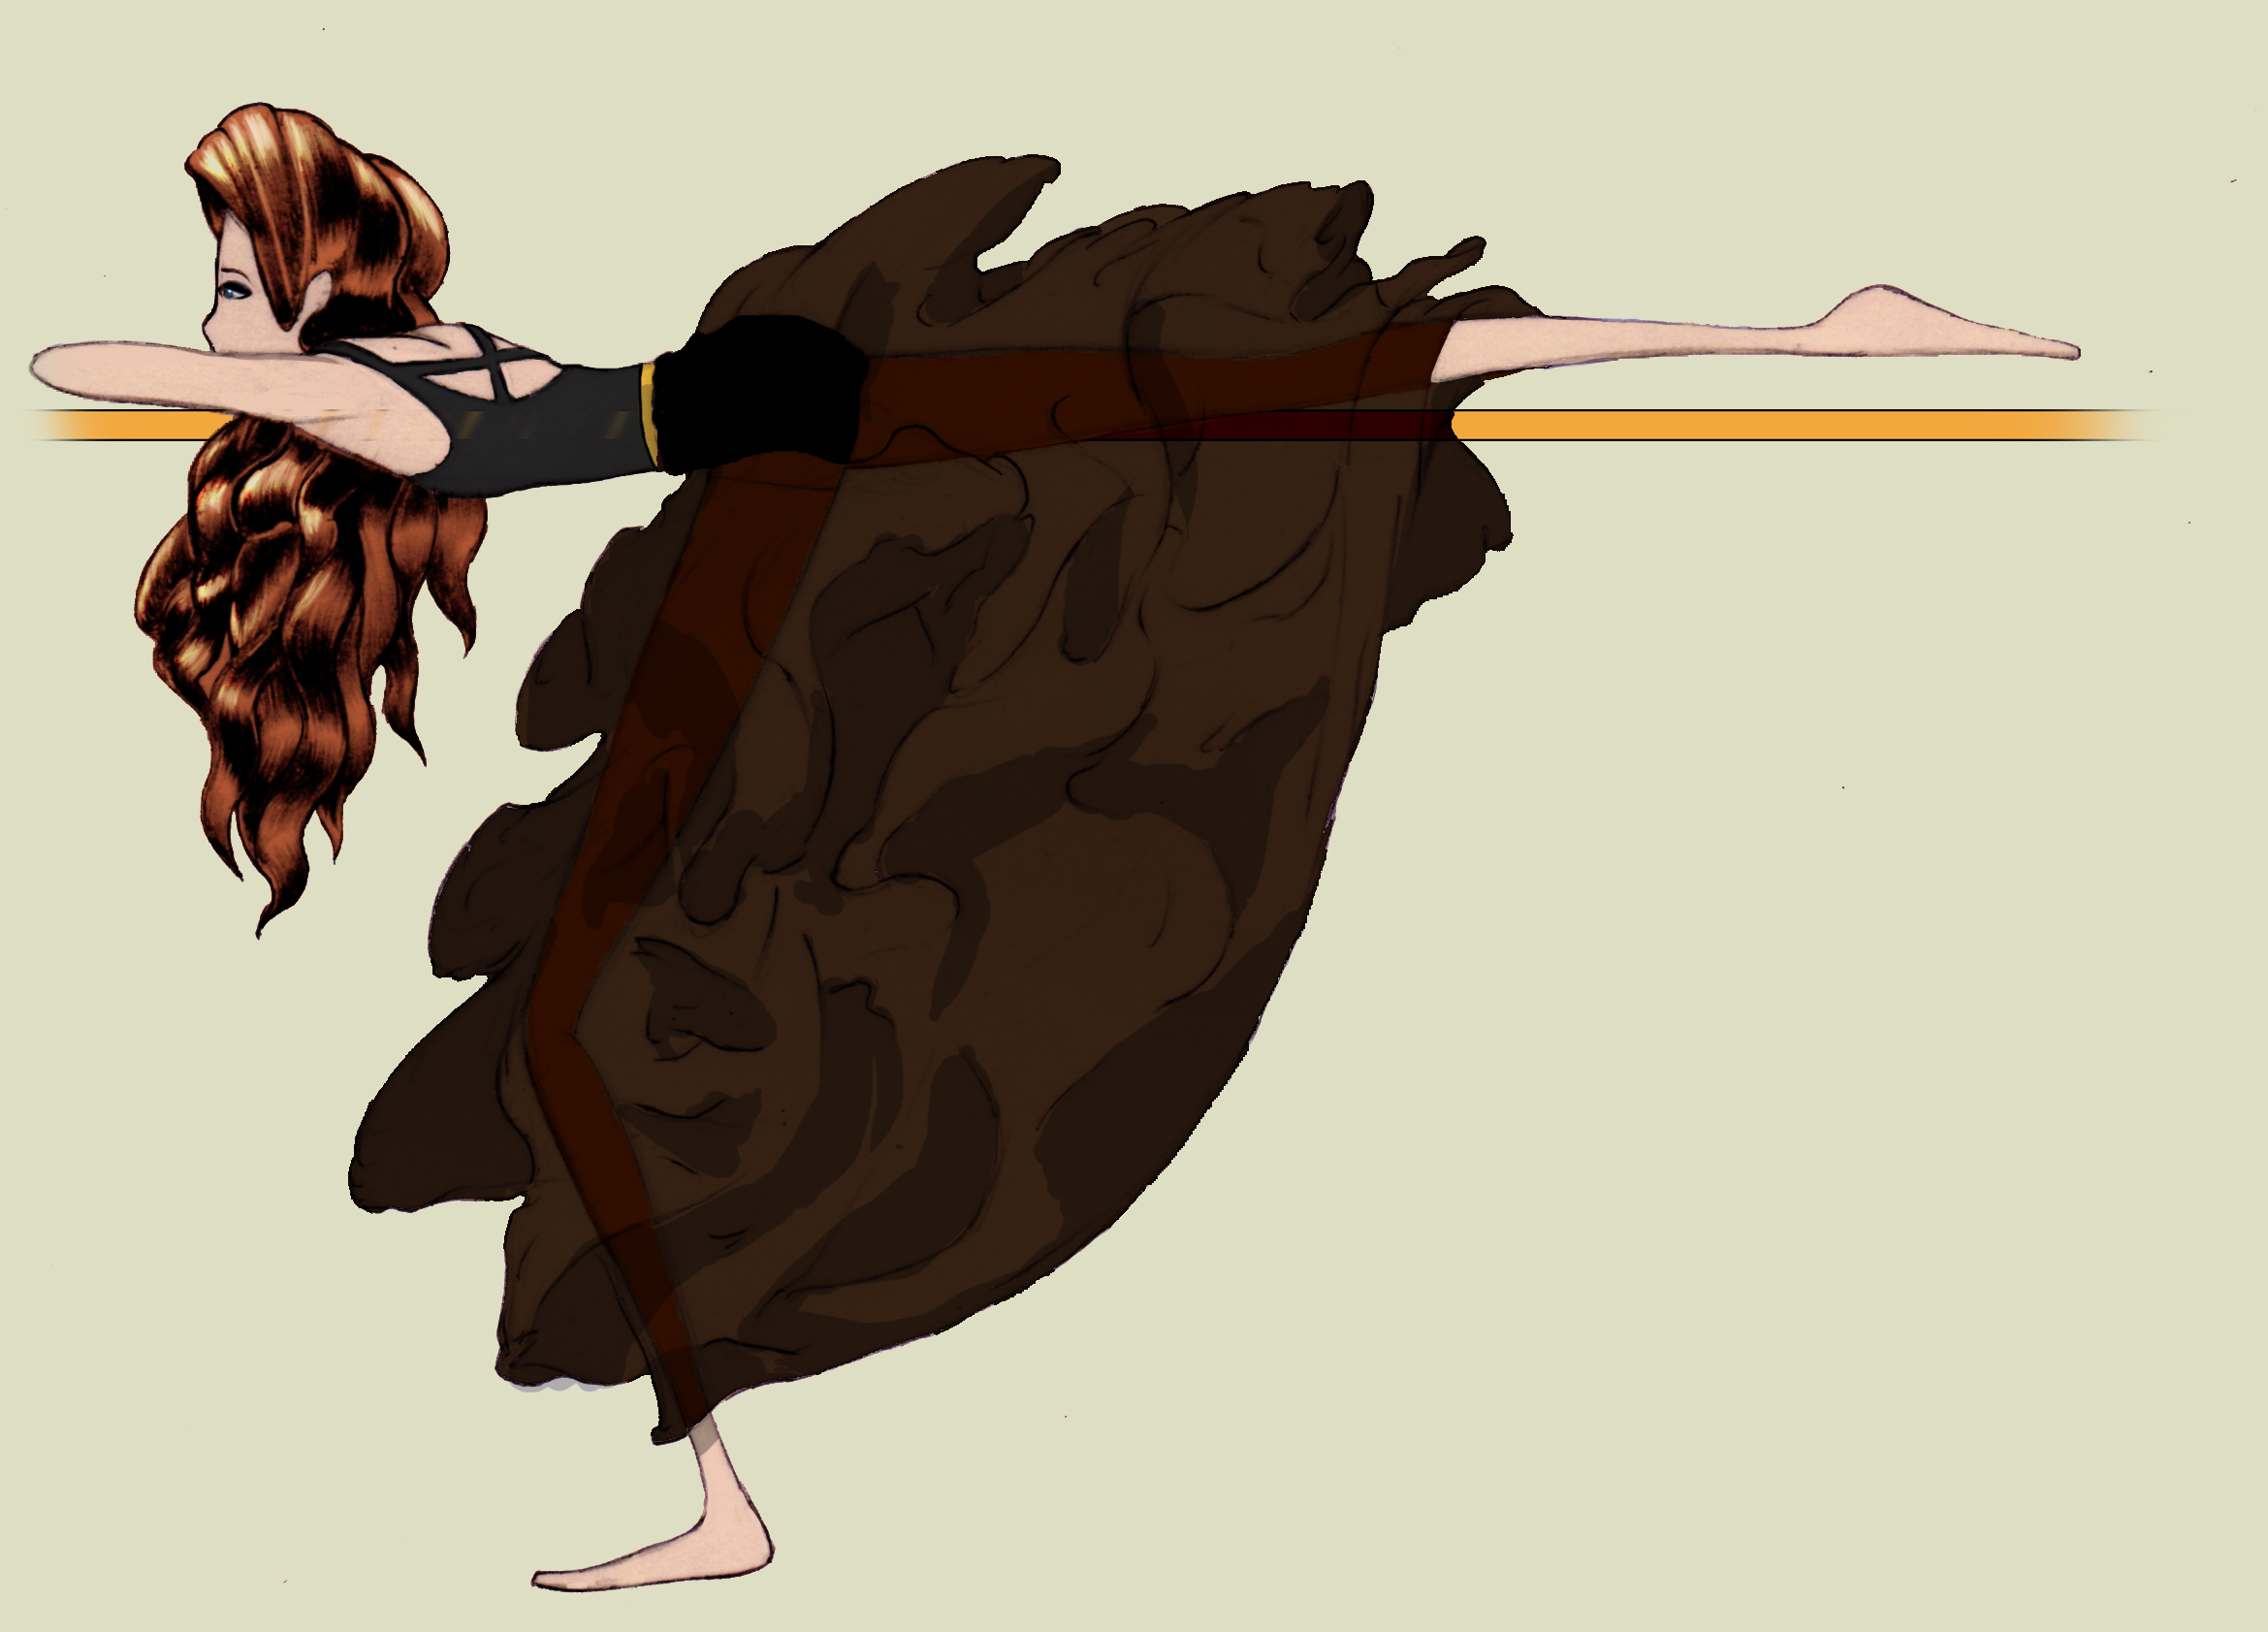 One of our custom barre illustrations for getting a fab booty workout Illustration by: Victor Hernandez